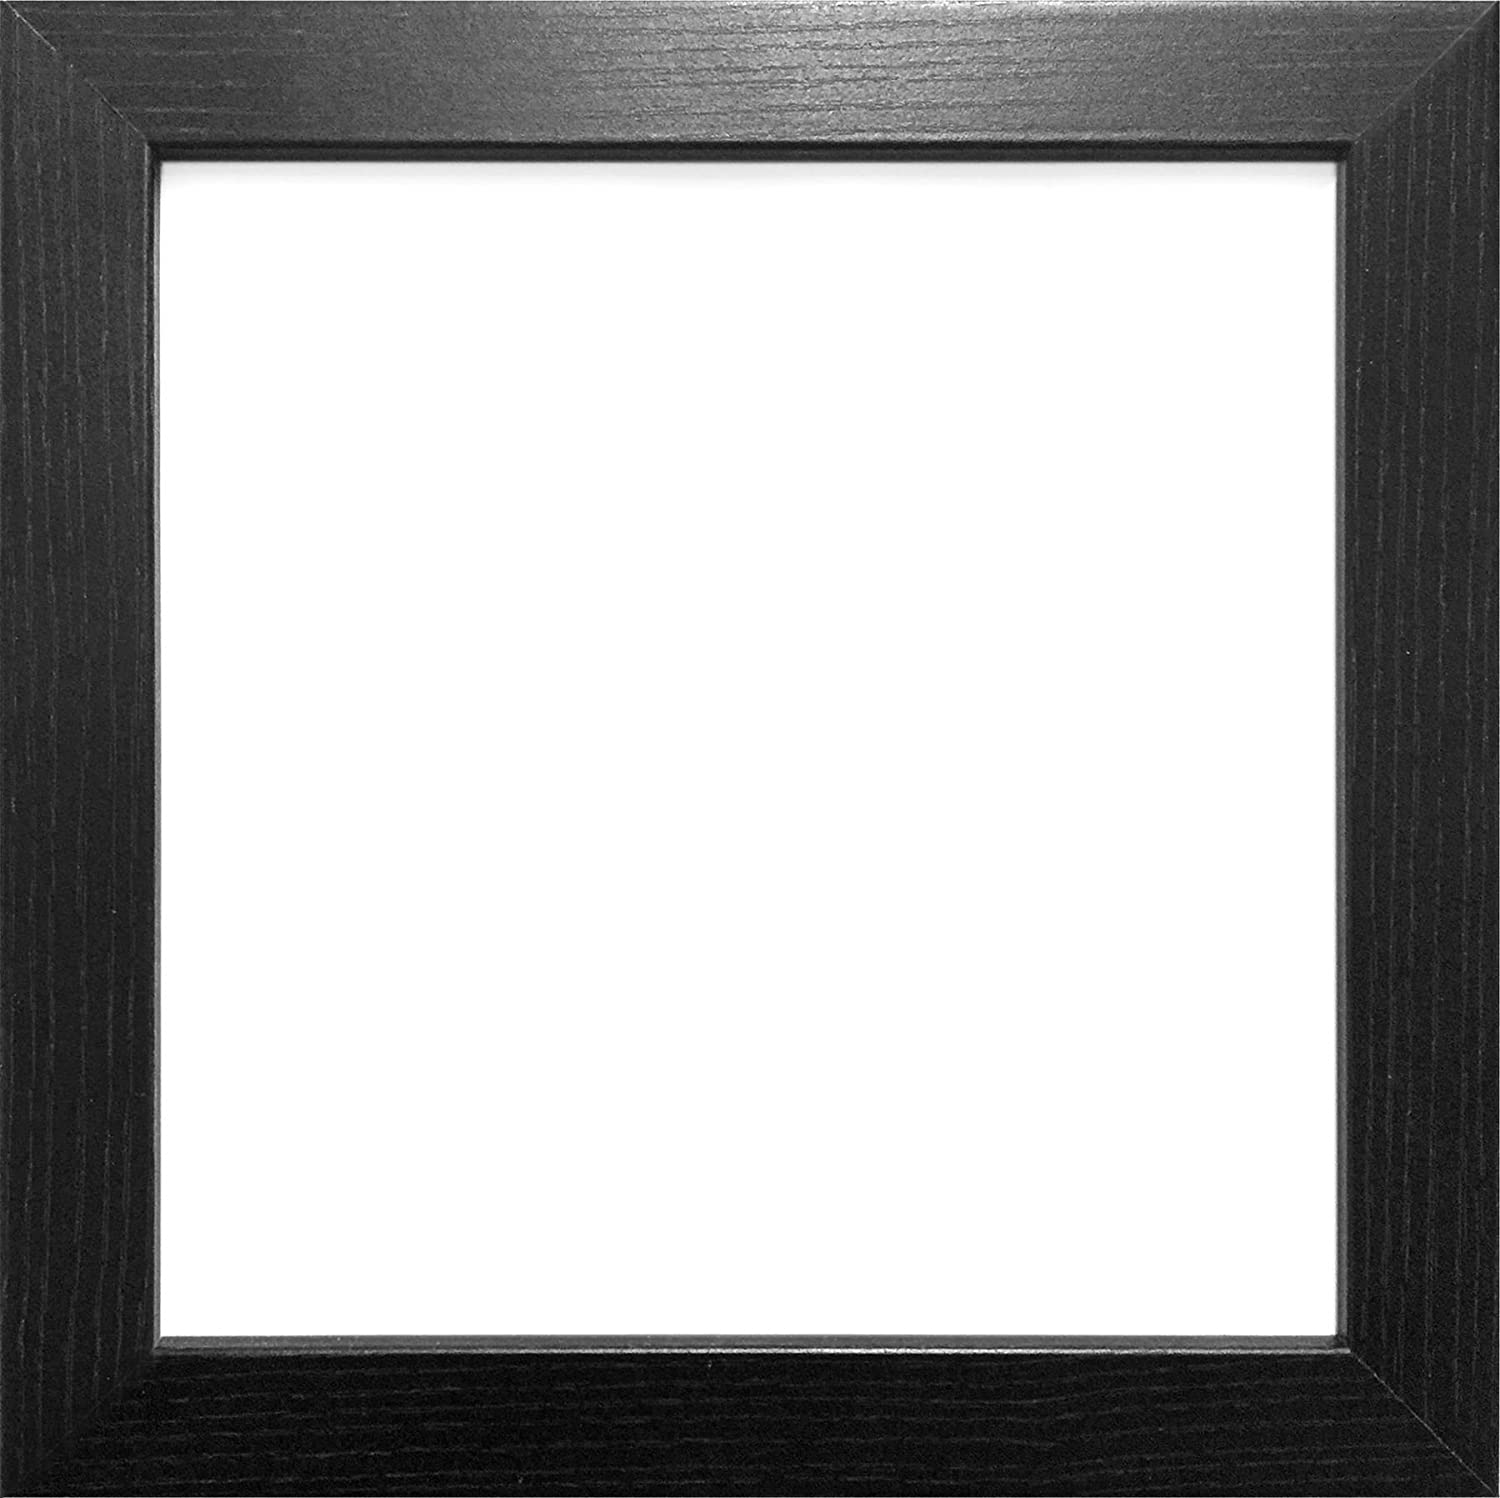 60X60CM BLACK COLOUR MODERN BOX FRAMES WOOD FINISH PHOTO PICTURE ...